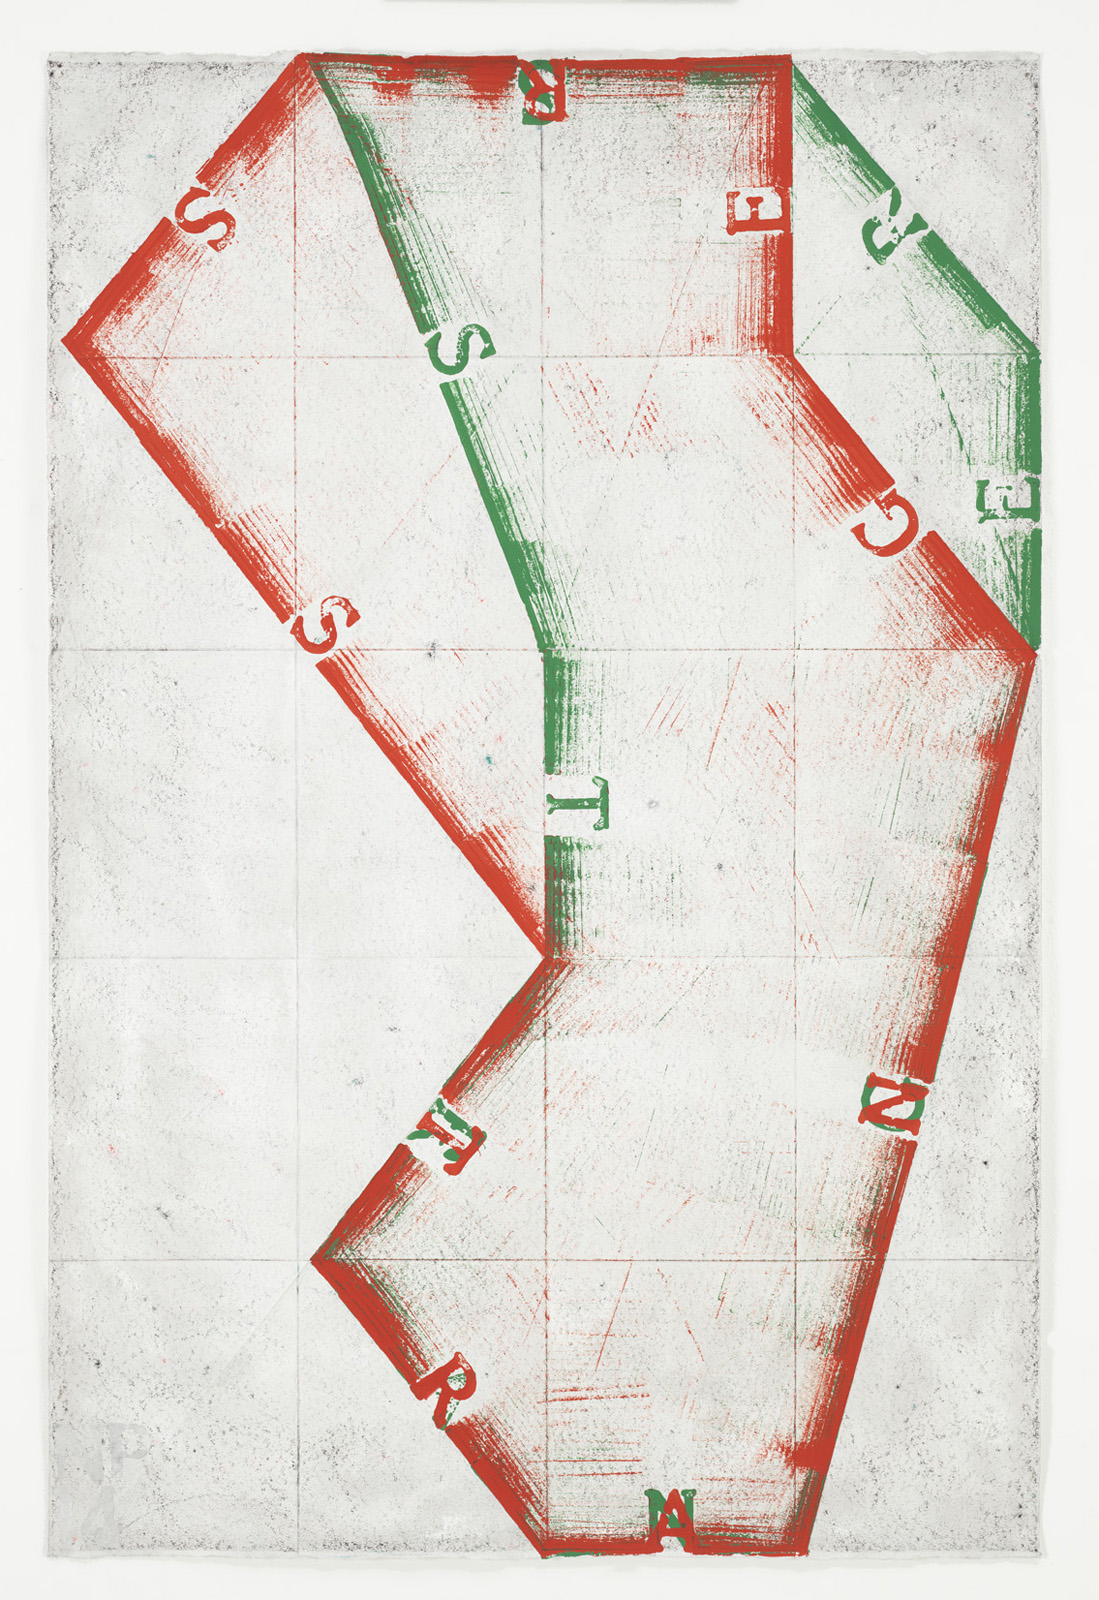 <p><em>Strangers/Strangers</em><span class='media'>Block-printing ink, Sumi ink, crayon, graphite and natural pigments on hand-made paper</span>47.5 x 31.5 in (120.7 x 80 cm)<br>34 5/8 x 50 in (87.9 x 127 cm) Framed (framed)<br>2015<br><a class='inquire' href='mailto:info@gildargallery.com?subject=Artwork Inquiry NPOL0012&body=I am interested in finding out more about Strangers/Strangers by Noah Pollack'>Inquire</a></p>